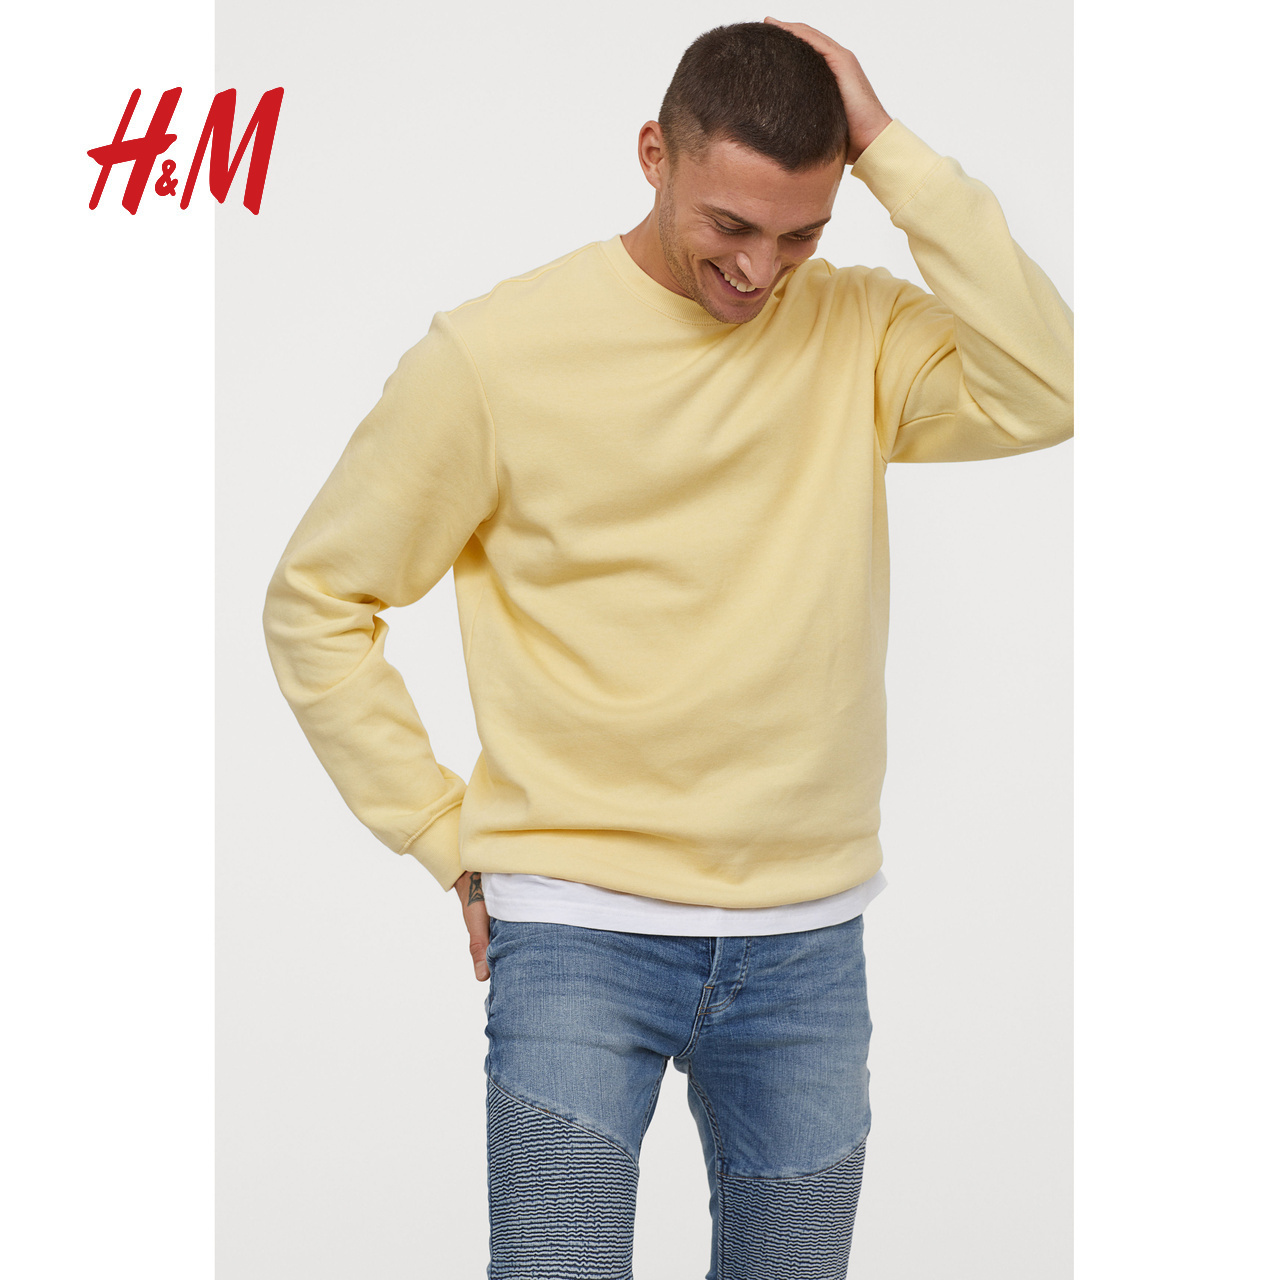 Fashion Week same HM divided men's round neck solid color loose sweater men's fashion 0685813